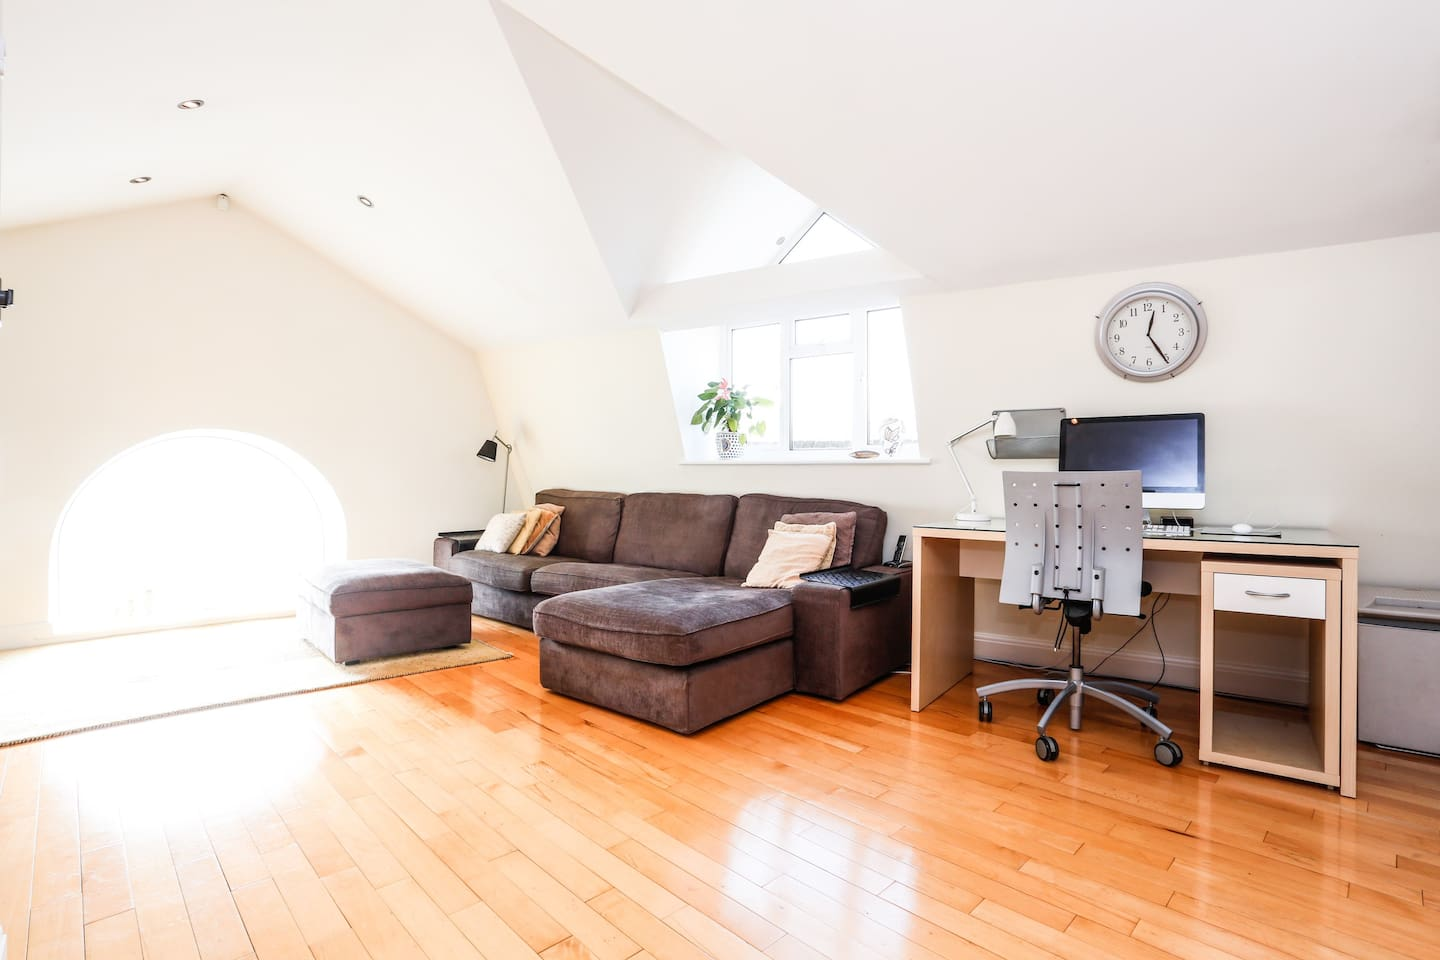 The room is part of a converted second floor loft apartment with many characteristic features throughout.